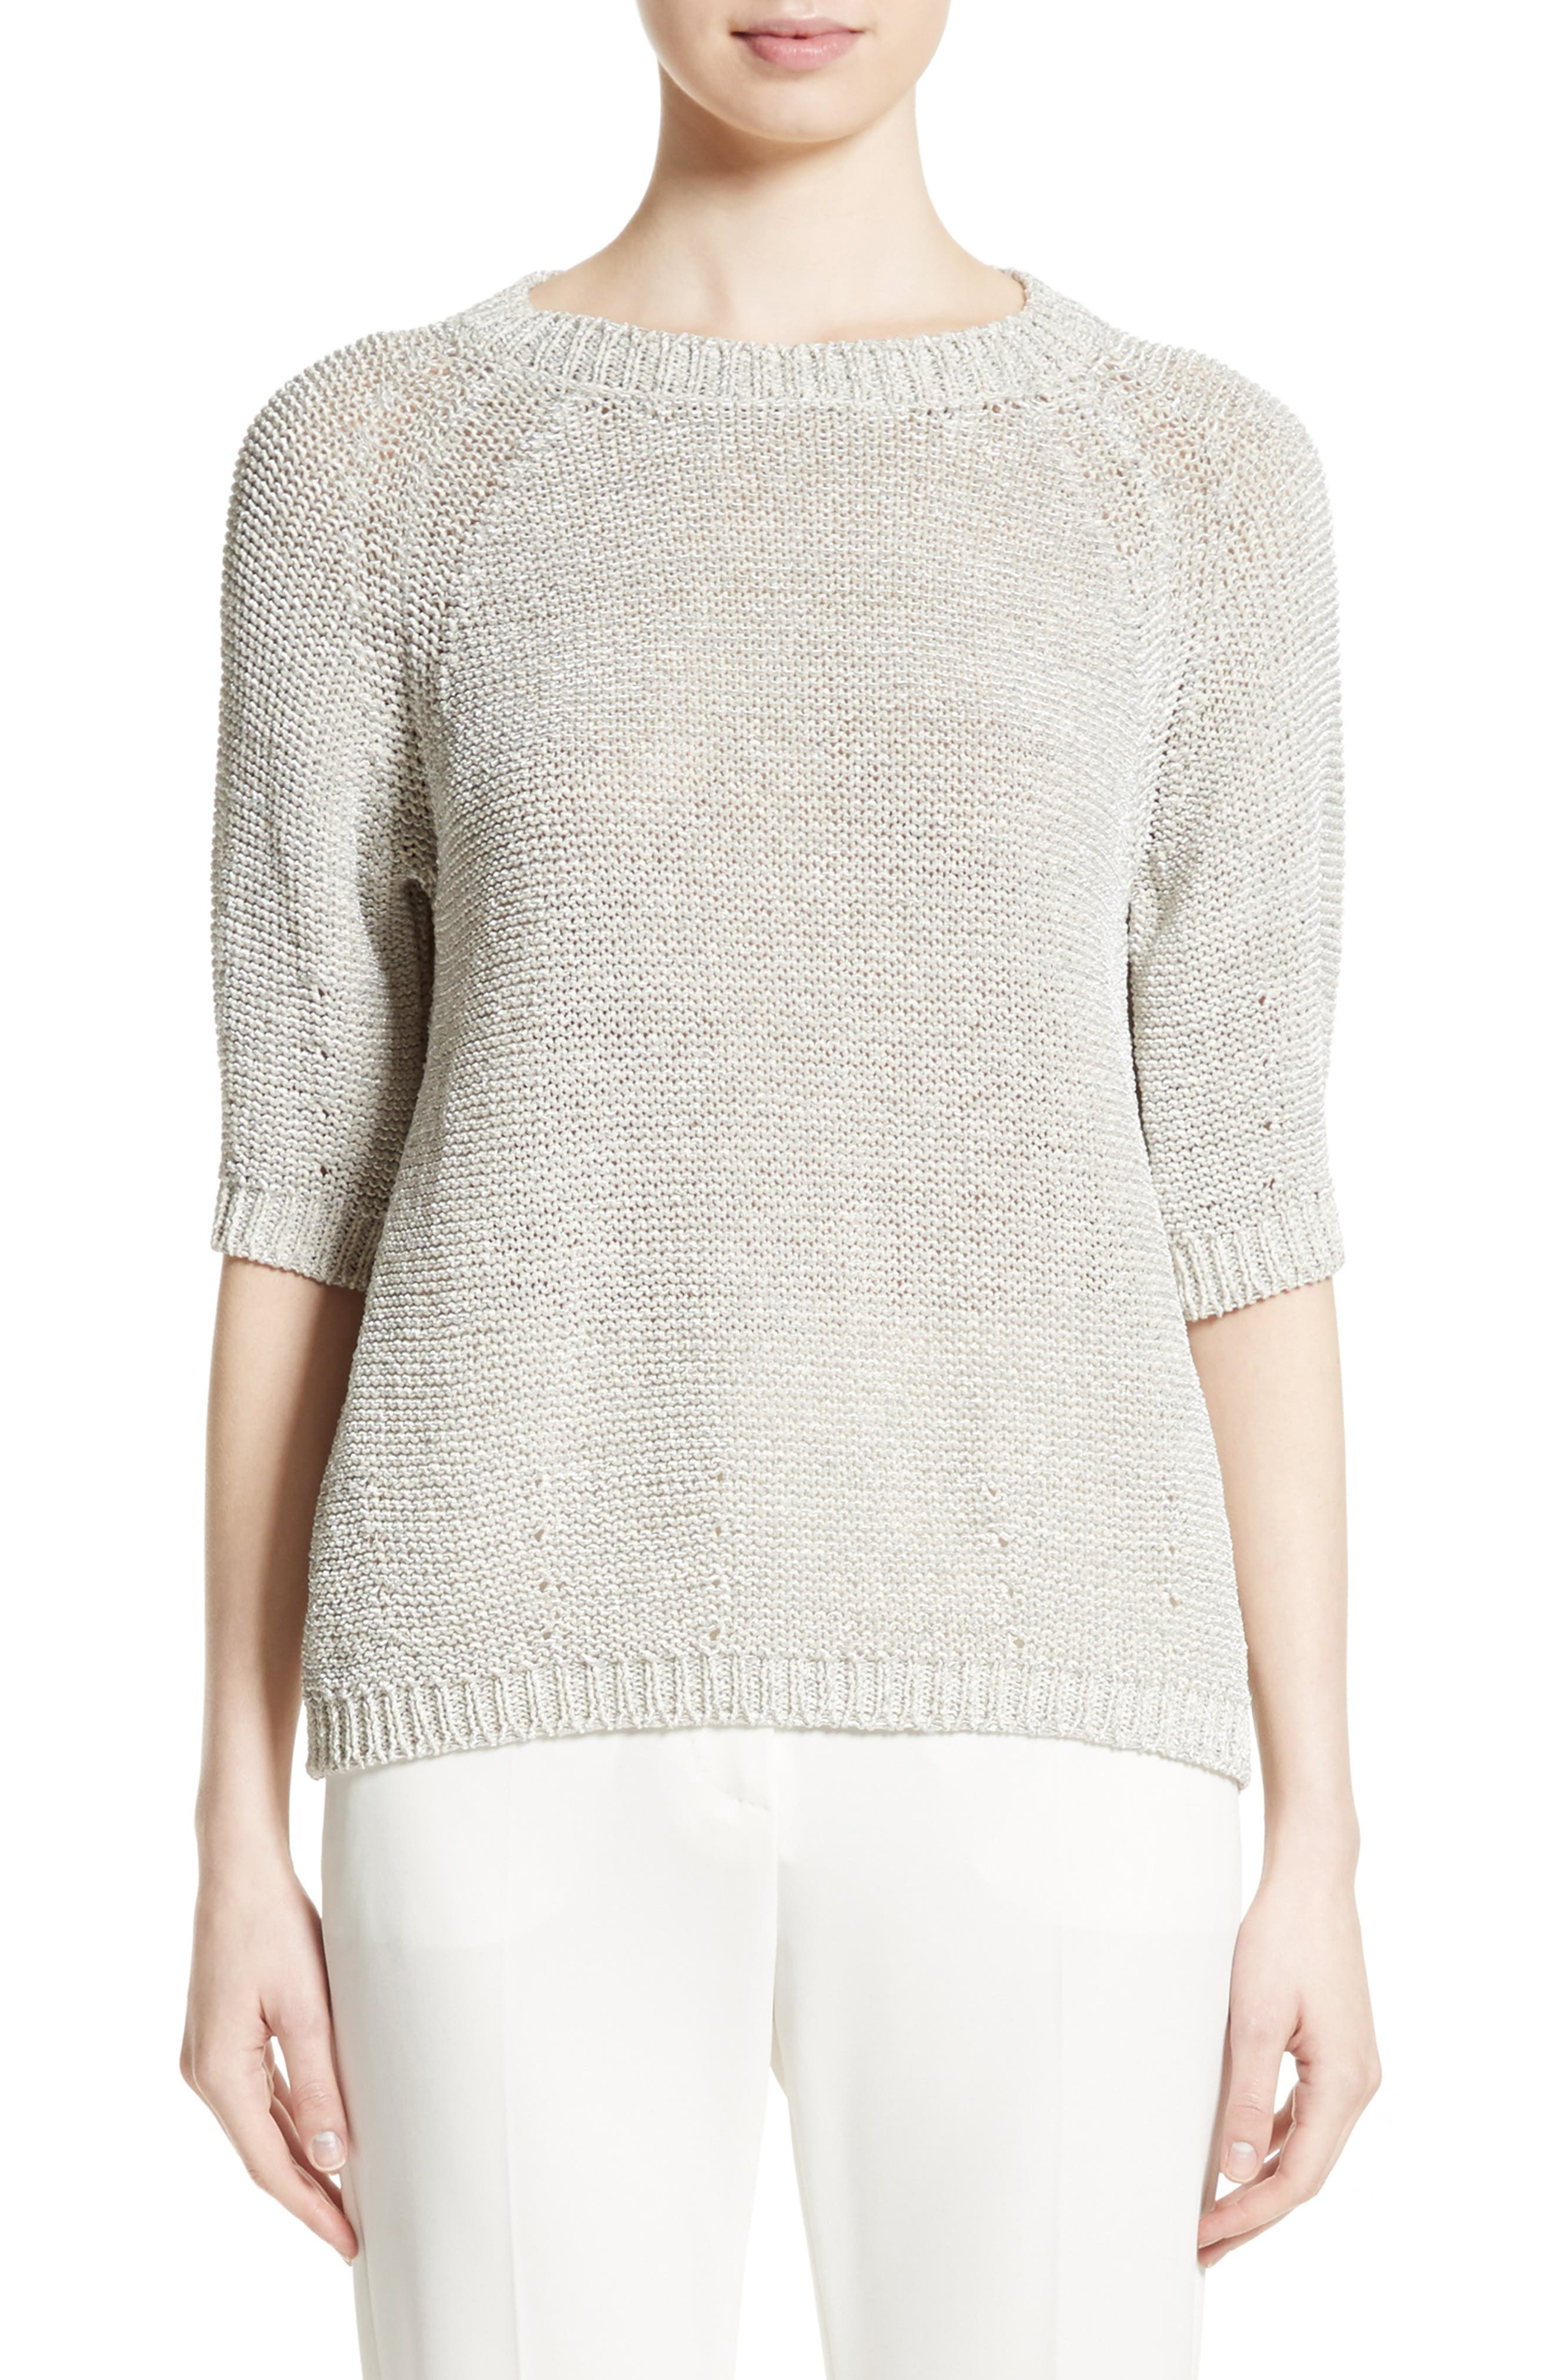 Alternate Image 1 Selected - Max Mara Cotton Blend Sweater